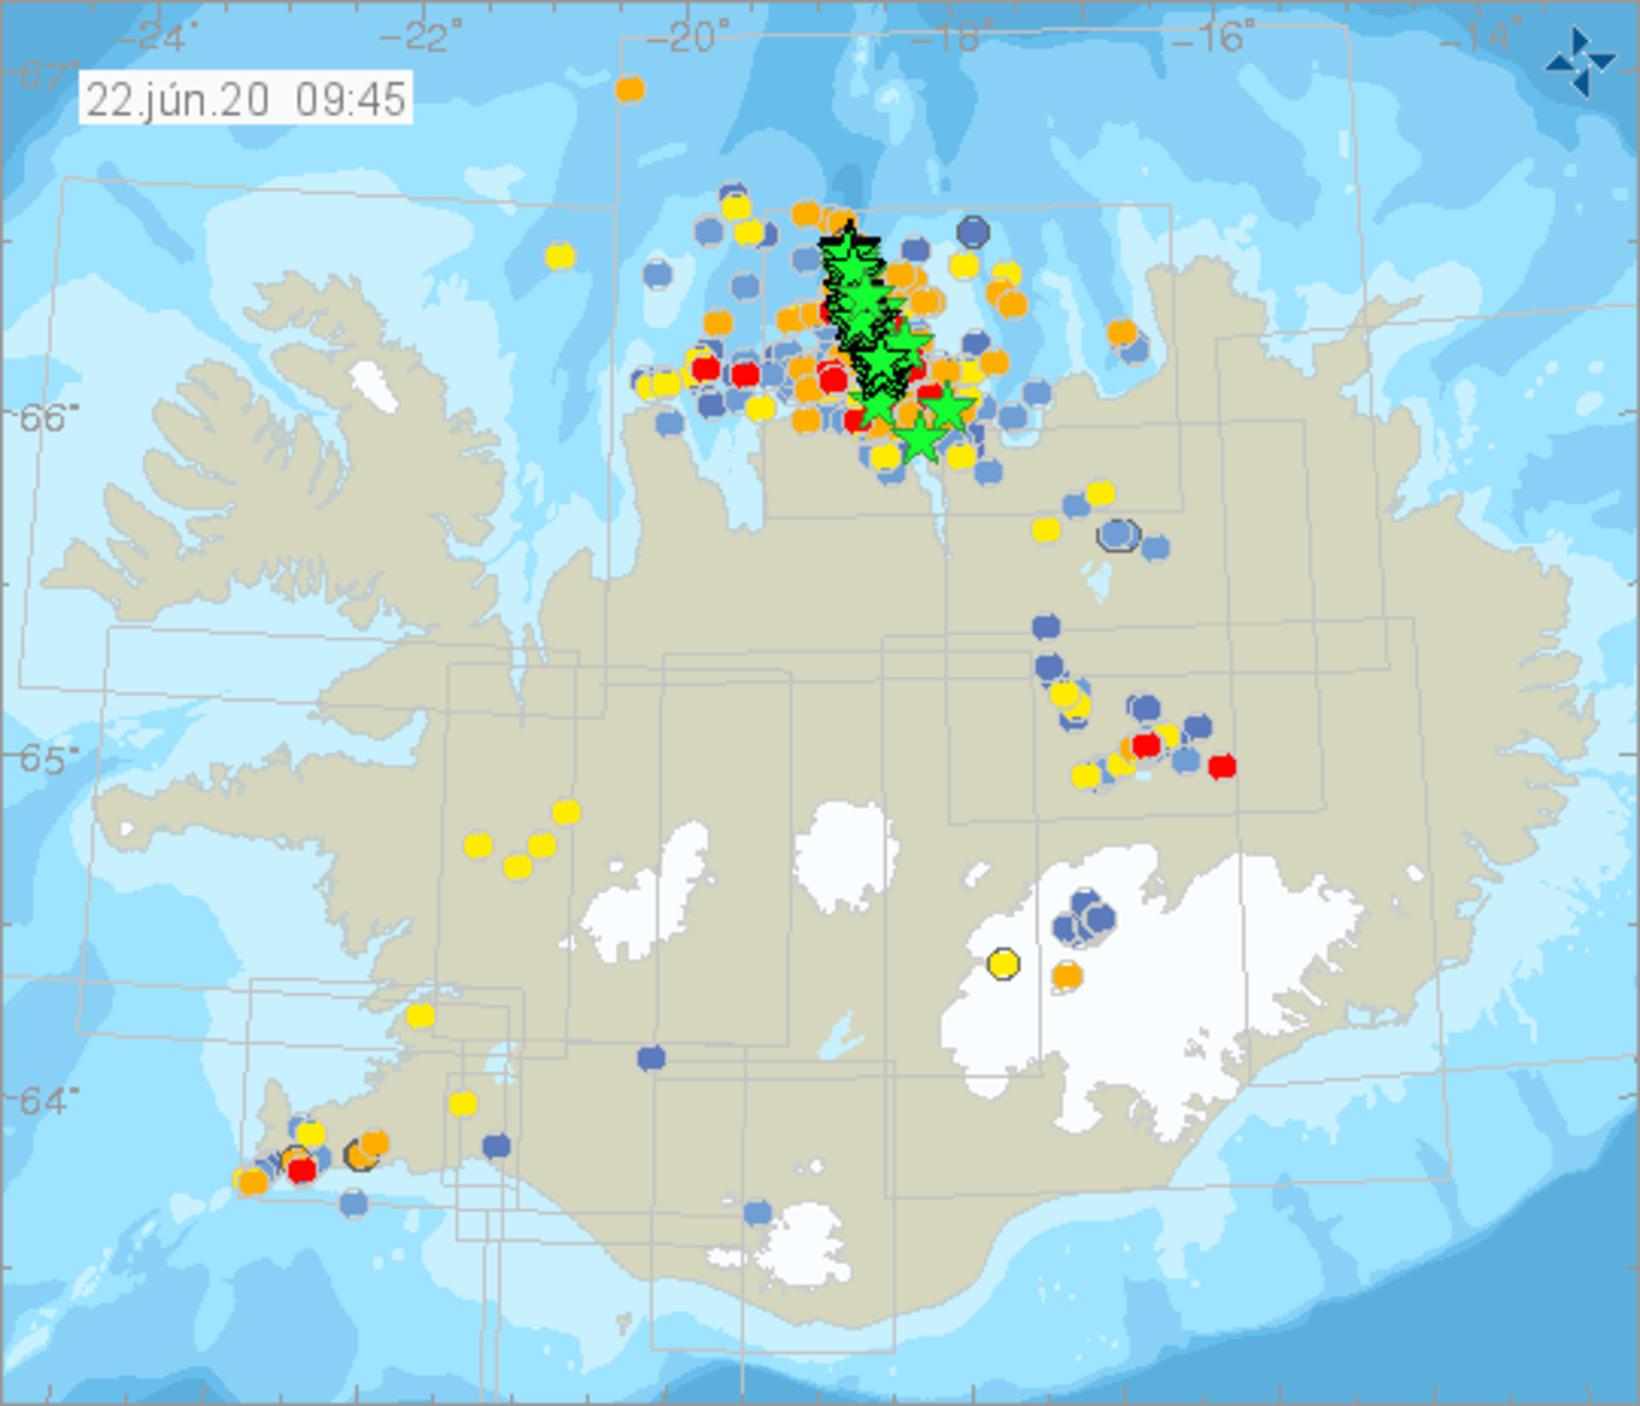 The map shows the location of the earthquakes.